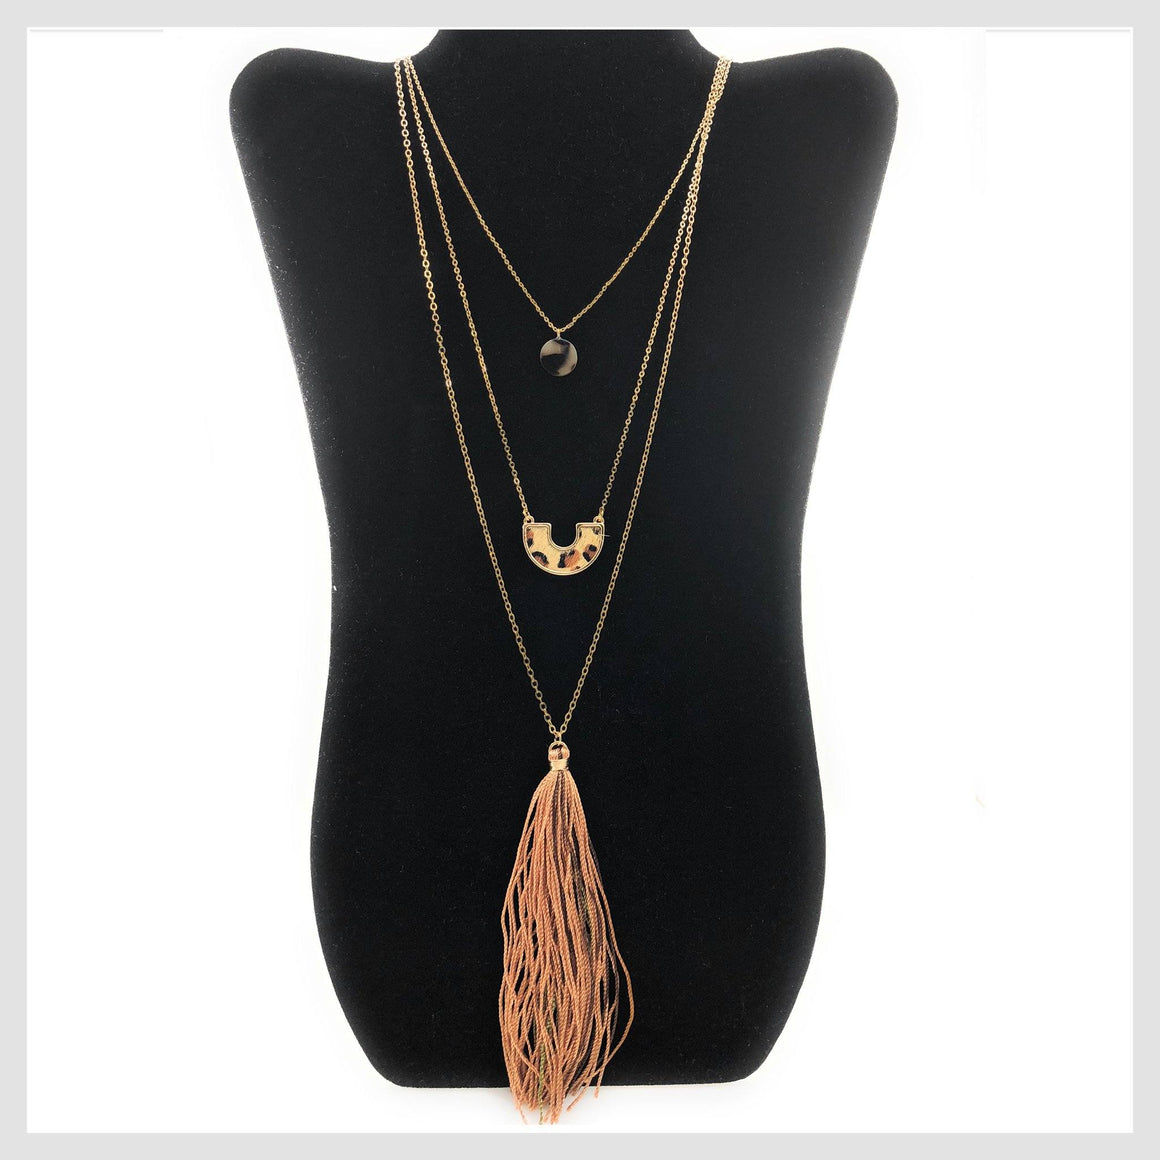 Fashion Statement Cheetah Animal Skin 3 Layer Tassel Necklace - Beads and Dangles